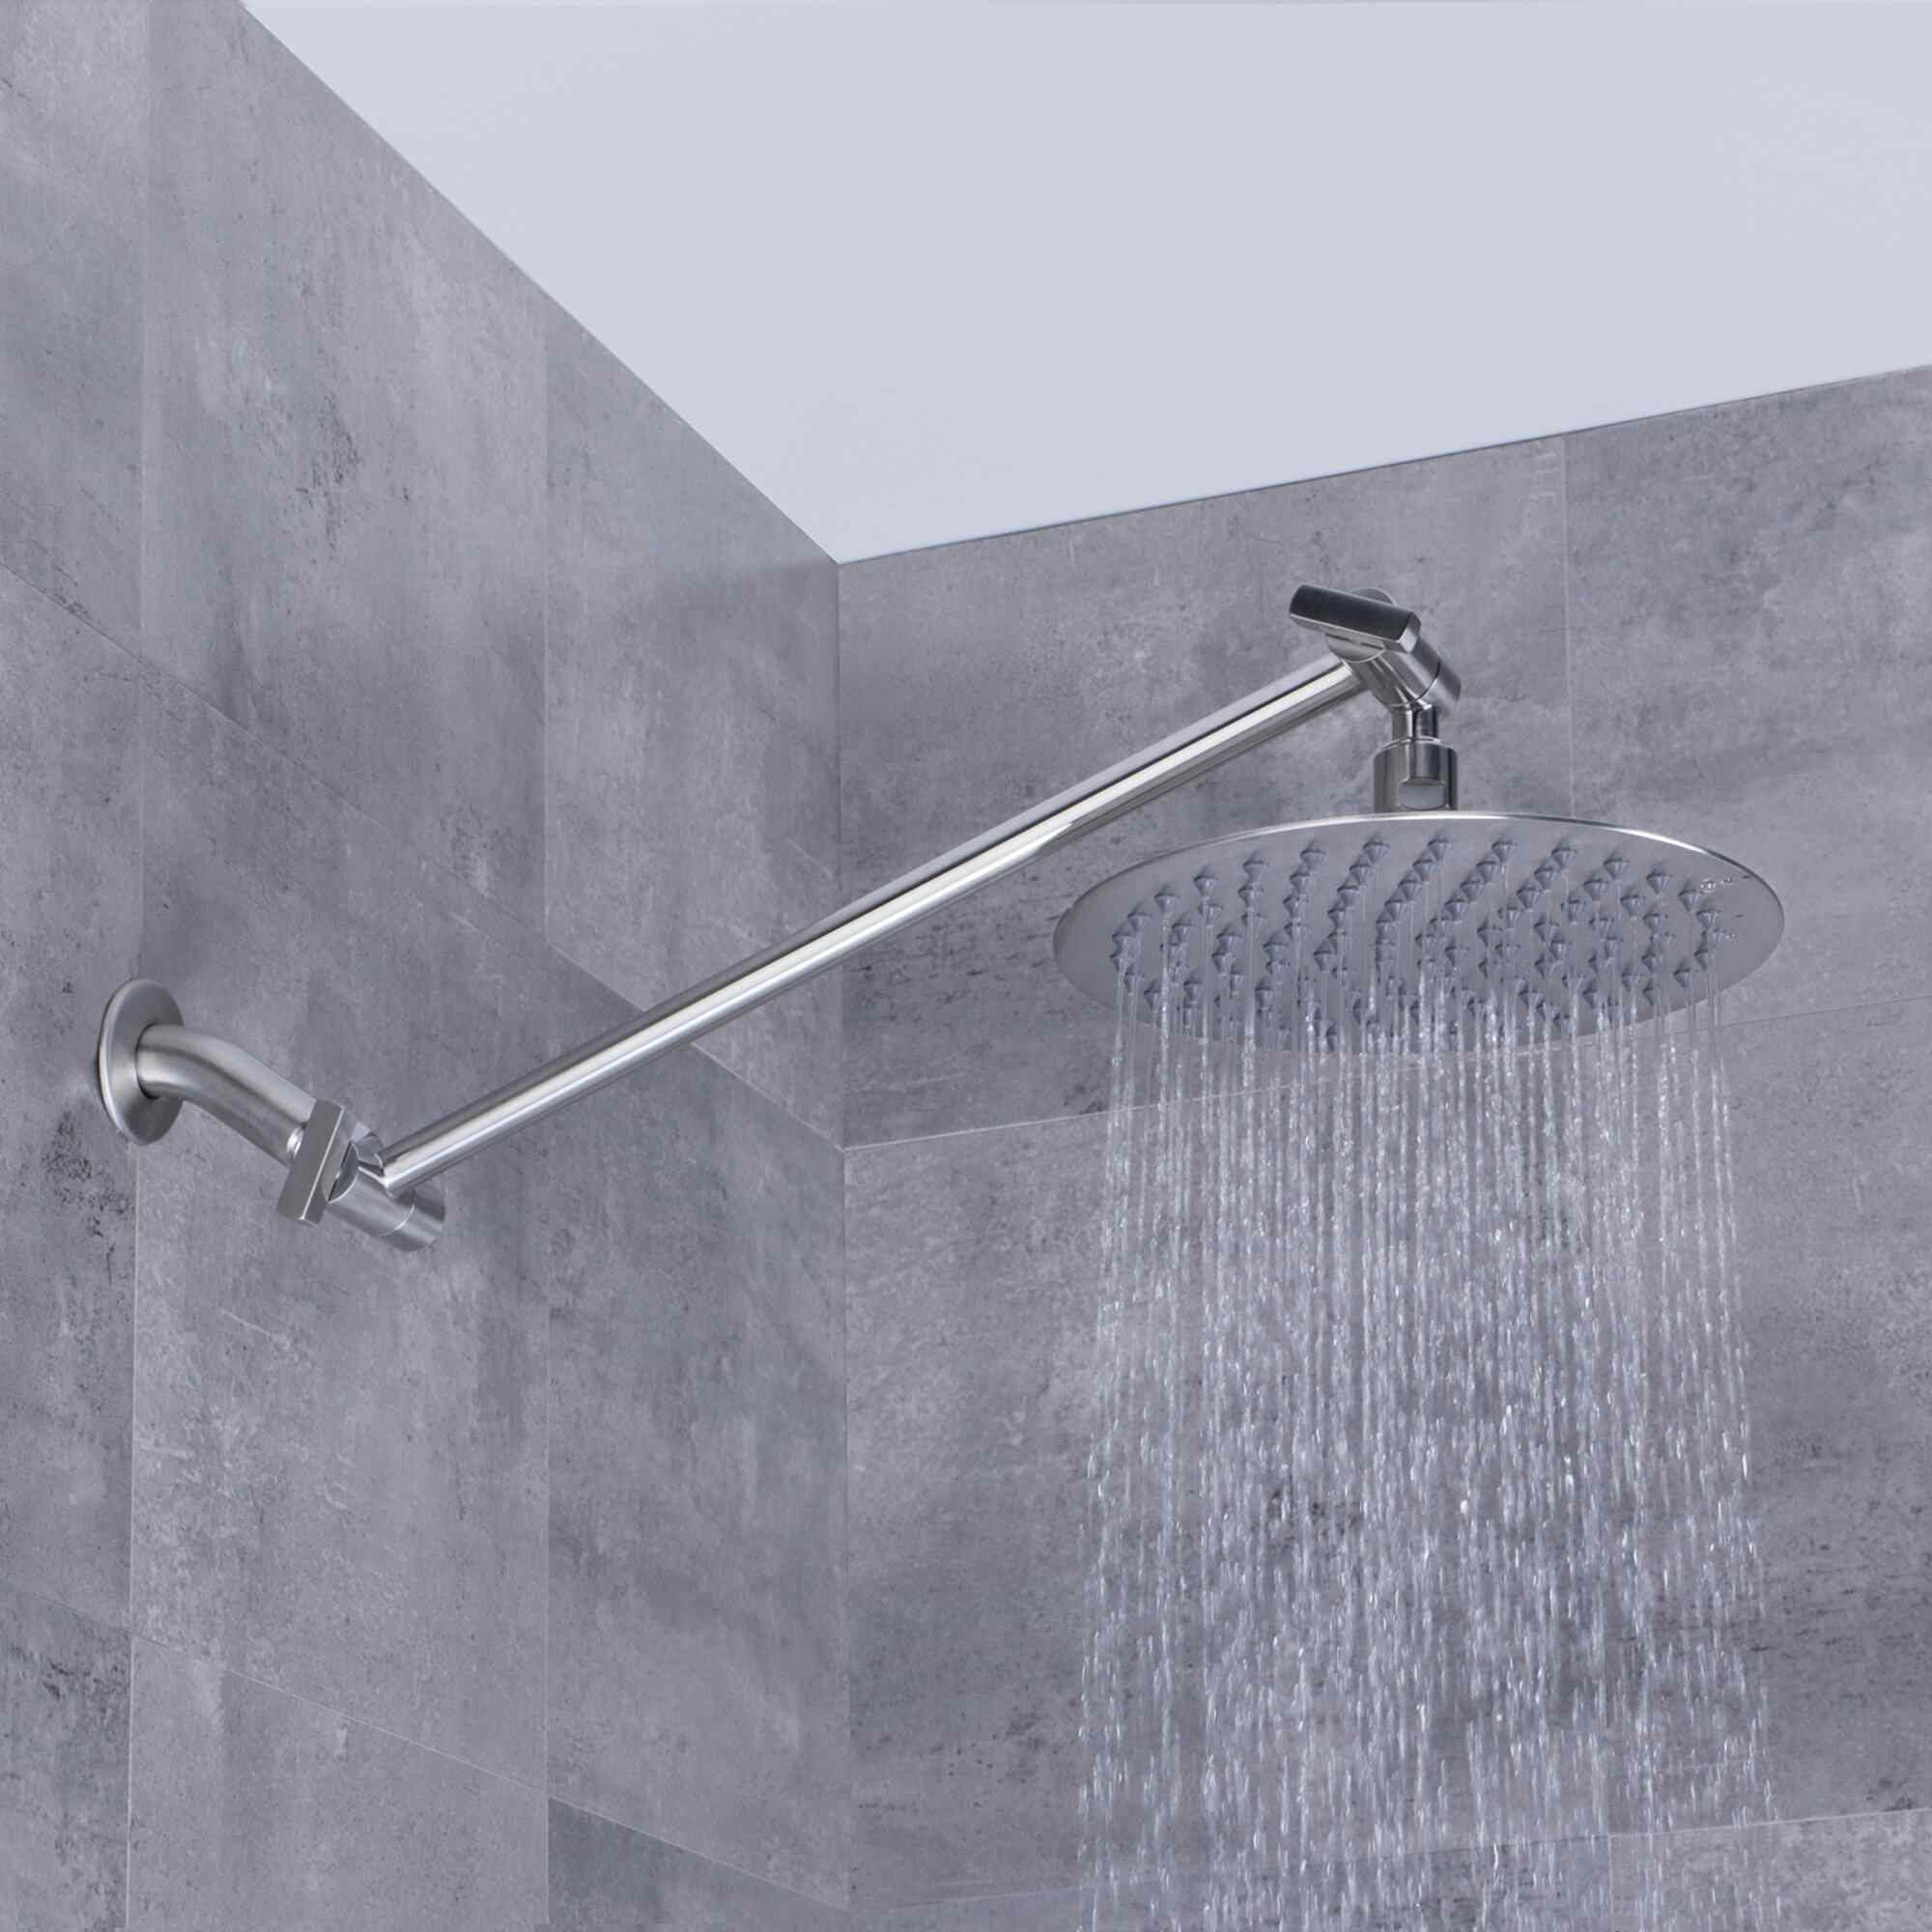 AFA Stainless Brushed Stainless Steel Rain Adjustable Shower Head